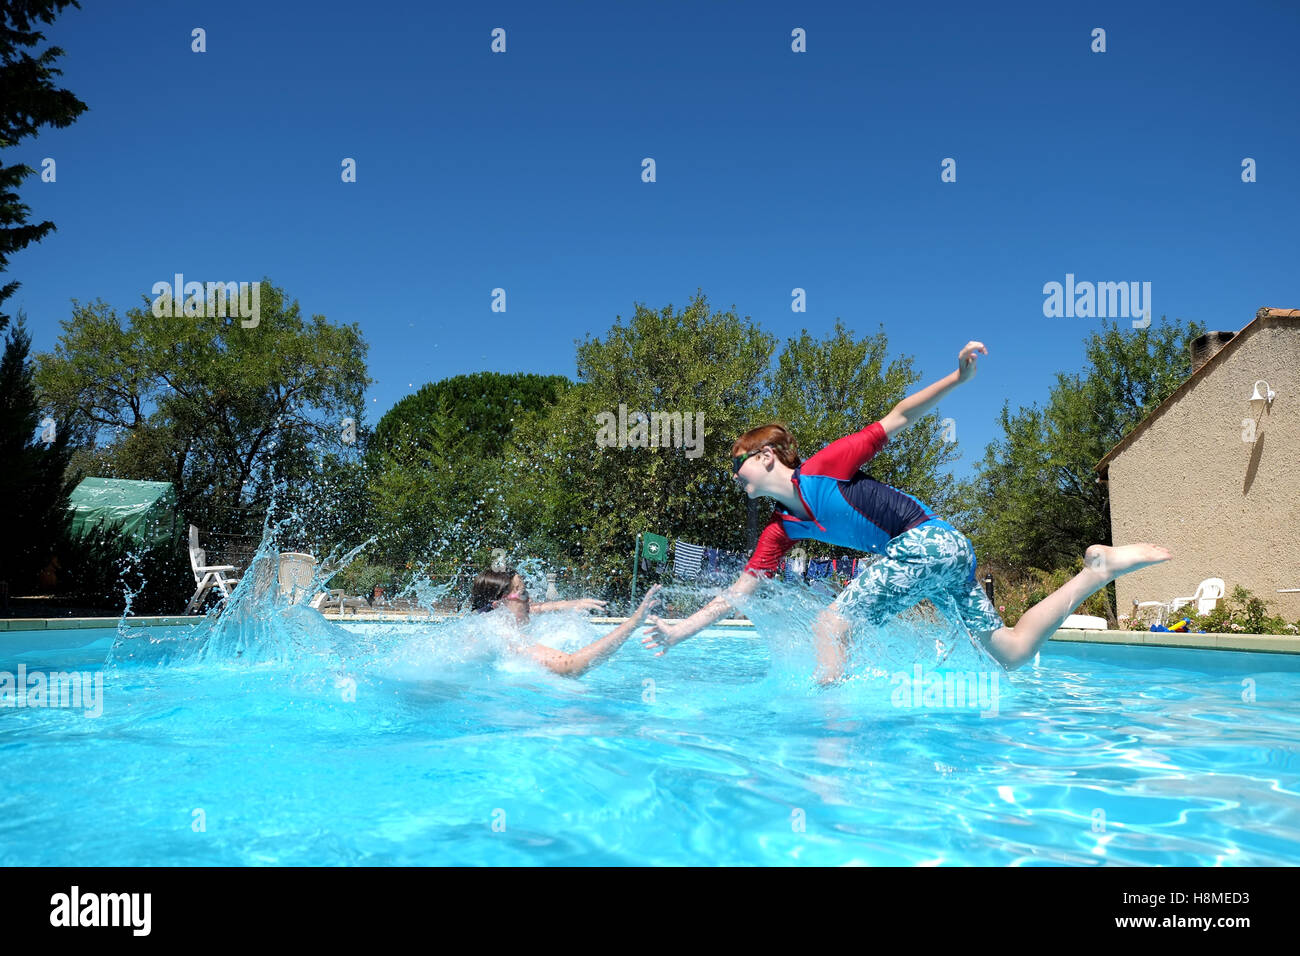 two children play in a swimming pool jumping and trying to meet in the middle and high five each others hands - Stock Image